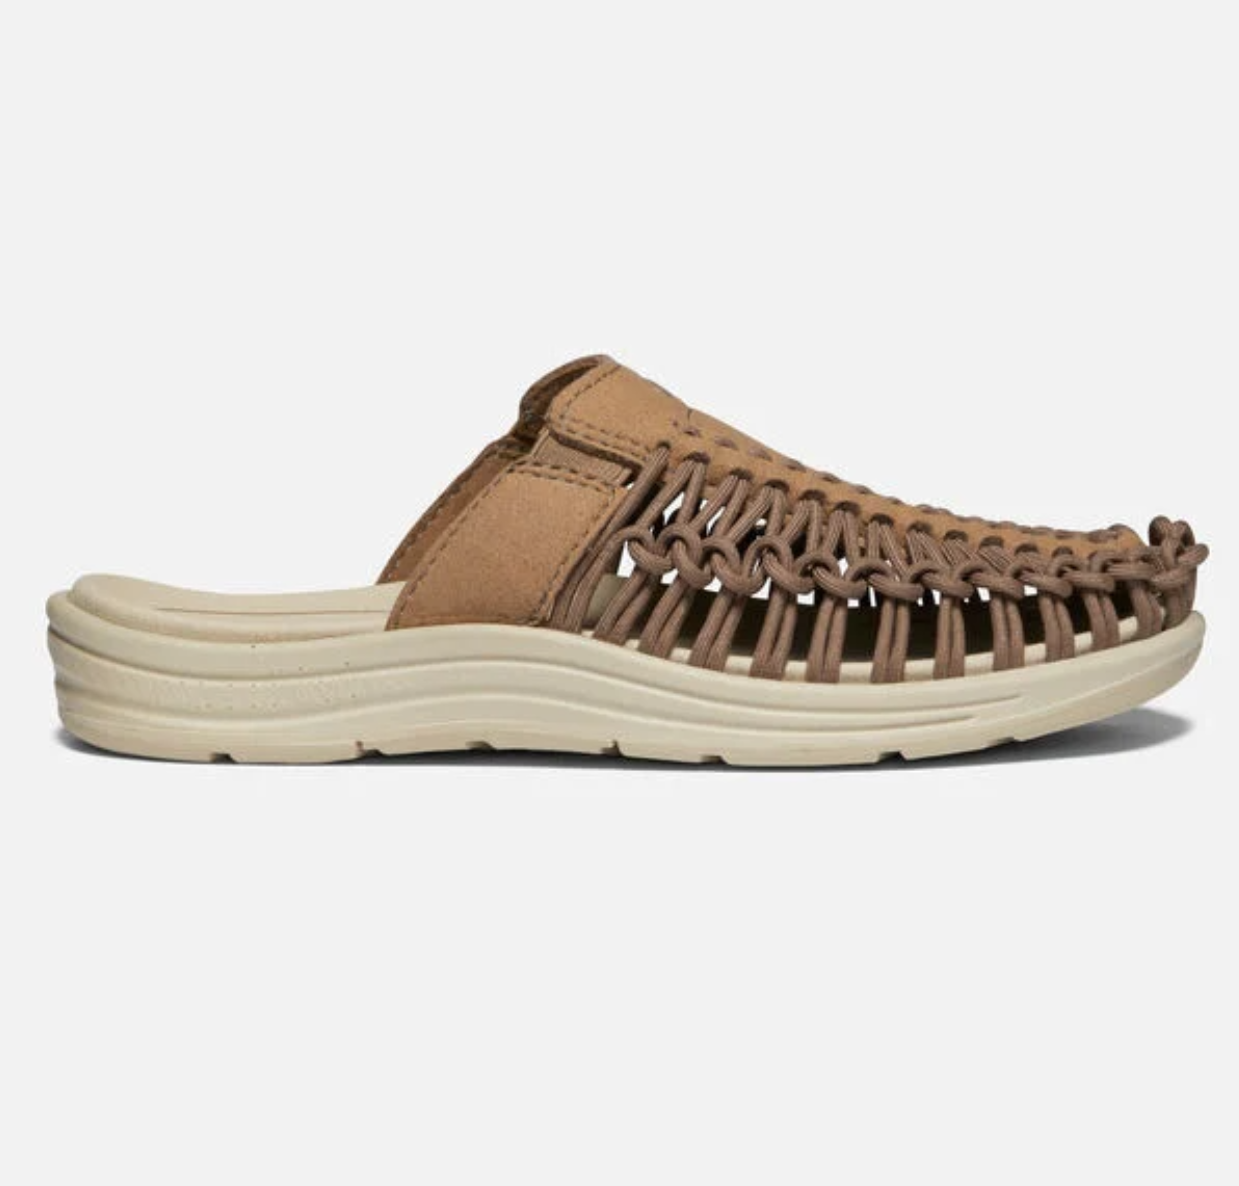 Keen Footwear Extra 30% off $100 on Select Styles